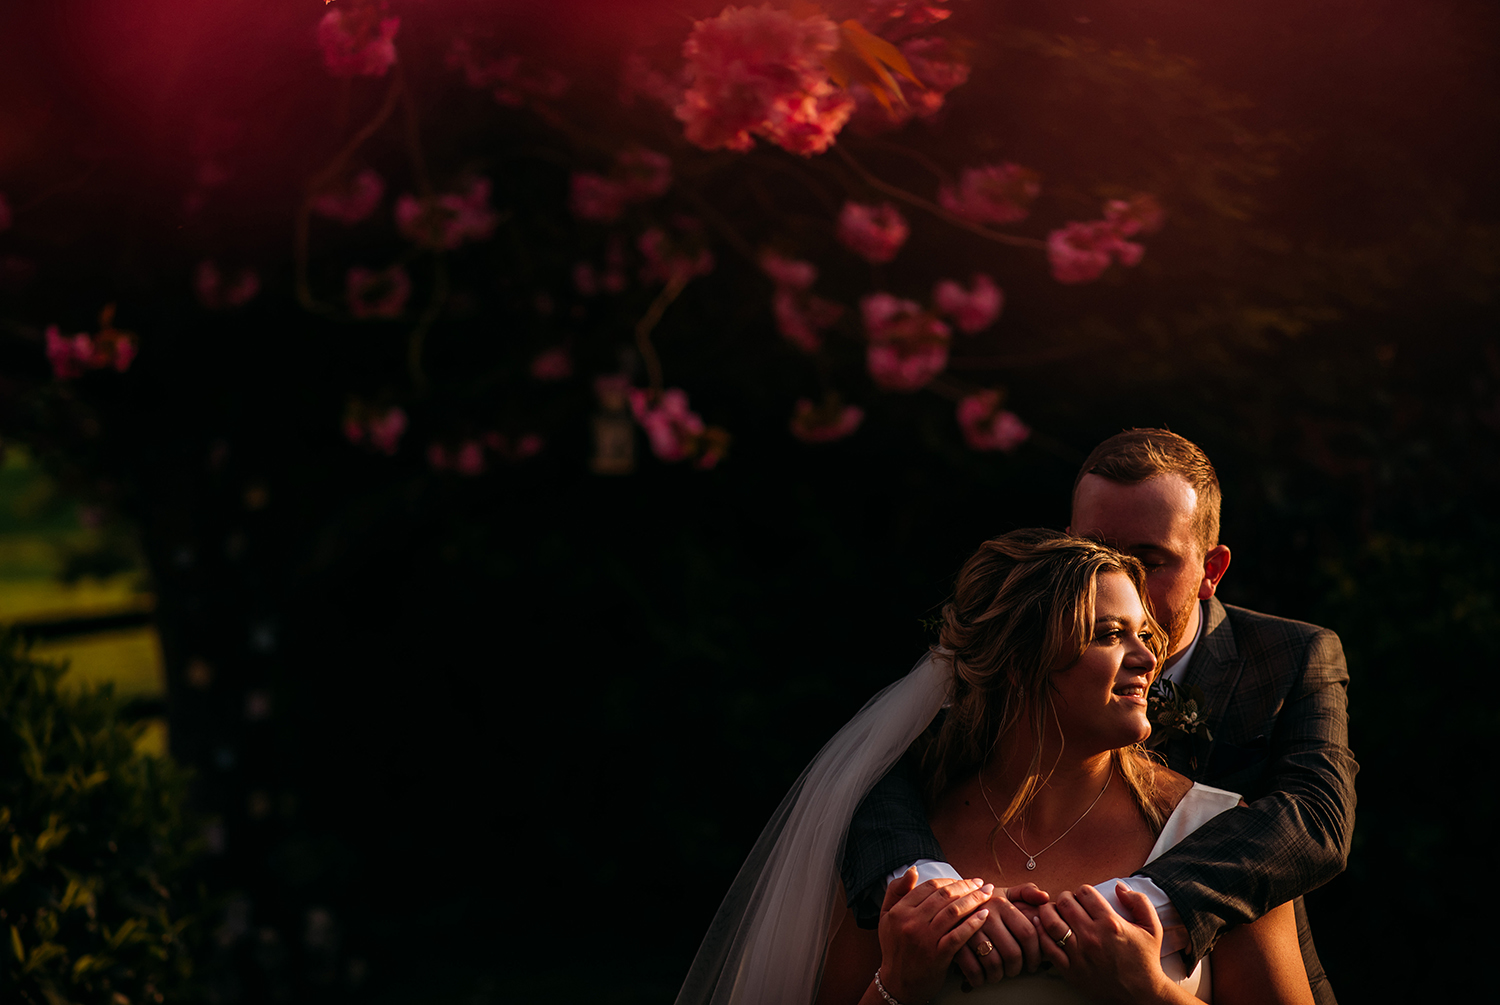 bride and groom in golden light under a blossom tree